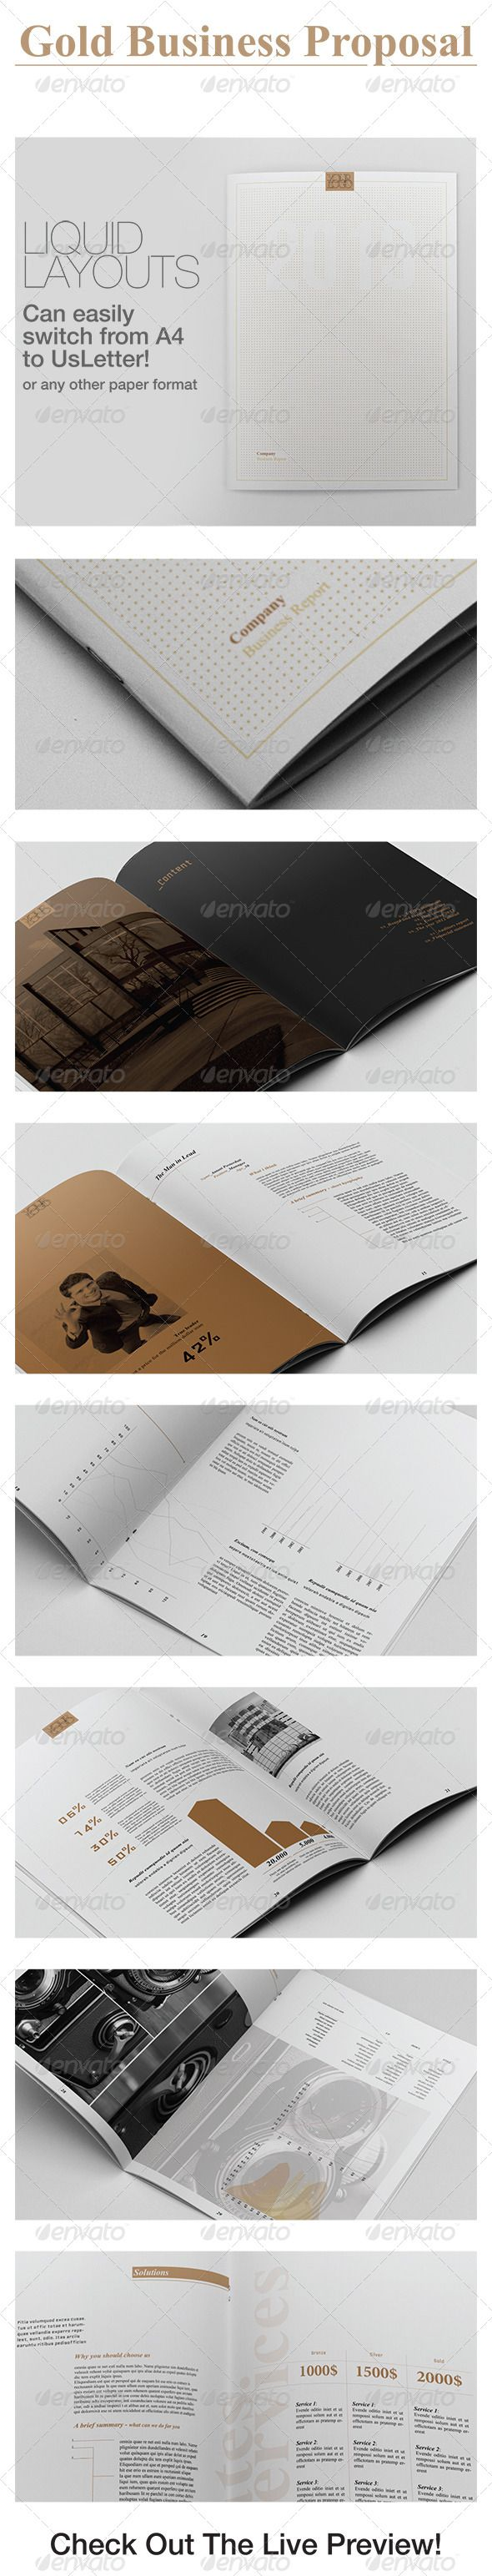 Gold Business Proposal: This is a complete Indesign Template for an Business Report / Proposal.